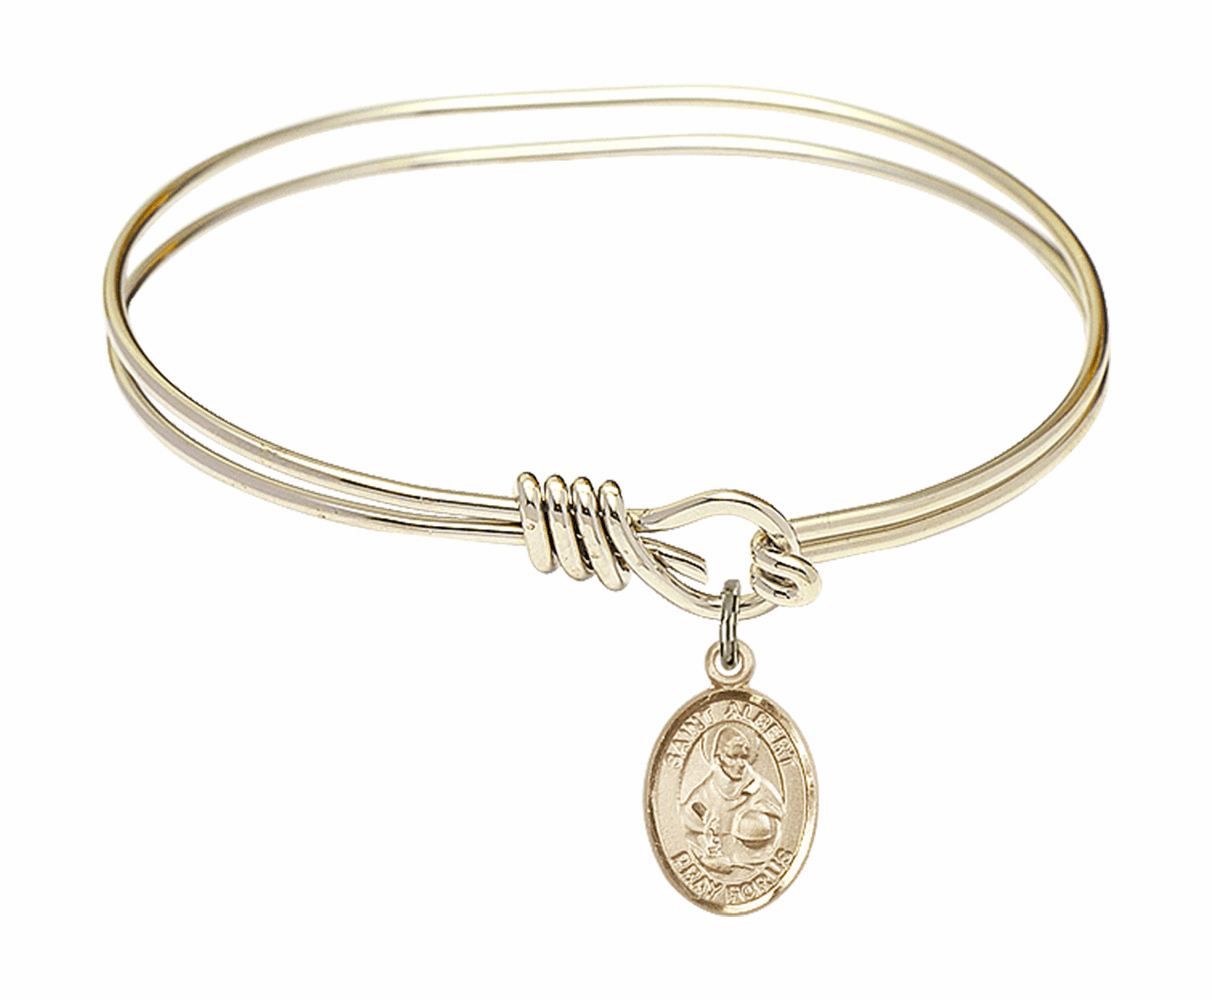 Round Loop St Albert the Great Bangle 14kt Gold-filled Charm Bracelet by Bliss